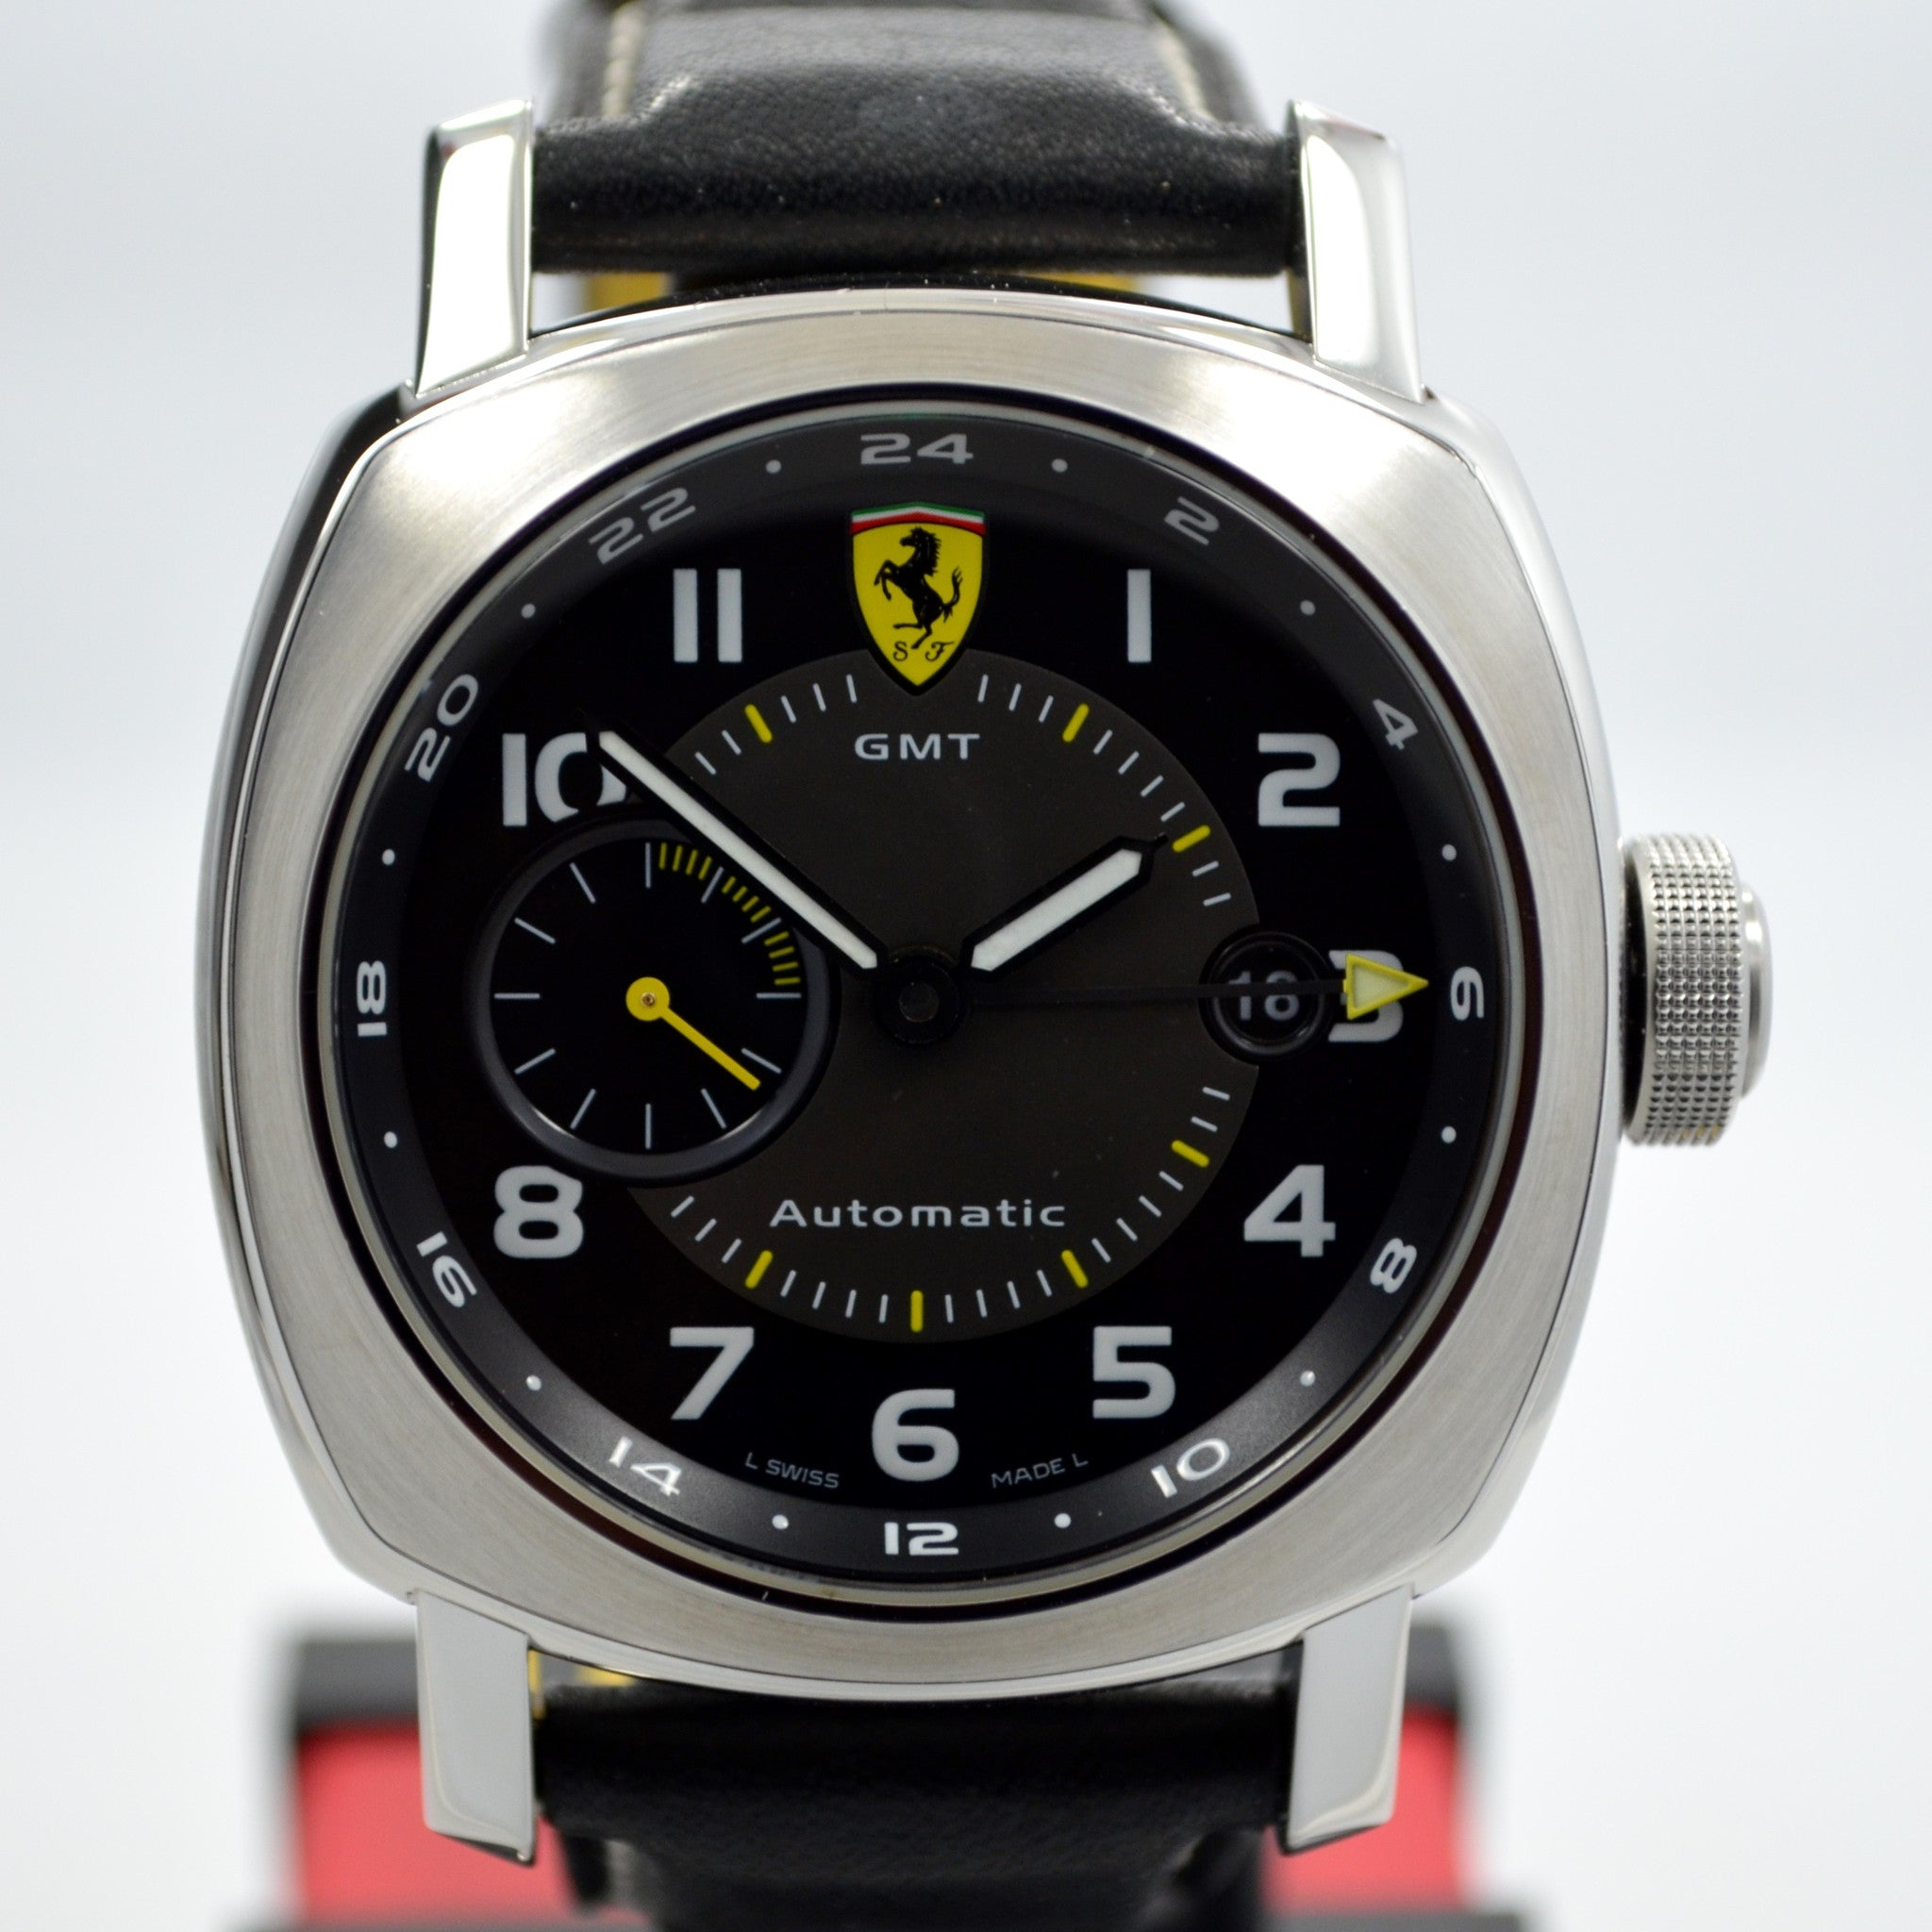 Panerai Ferrari Scuderia GMT Stainless Steel F6655 Automatic Watch Box Papers - Hashtag Watch Company